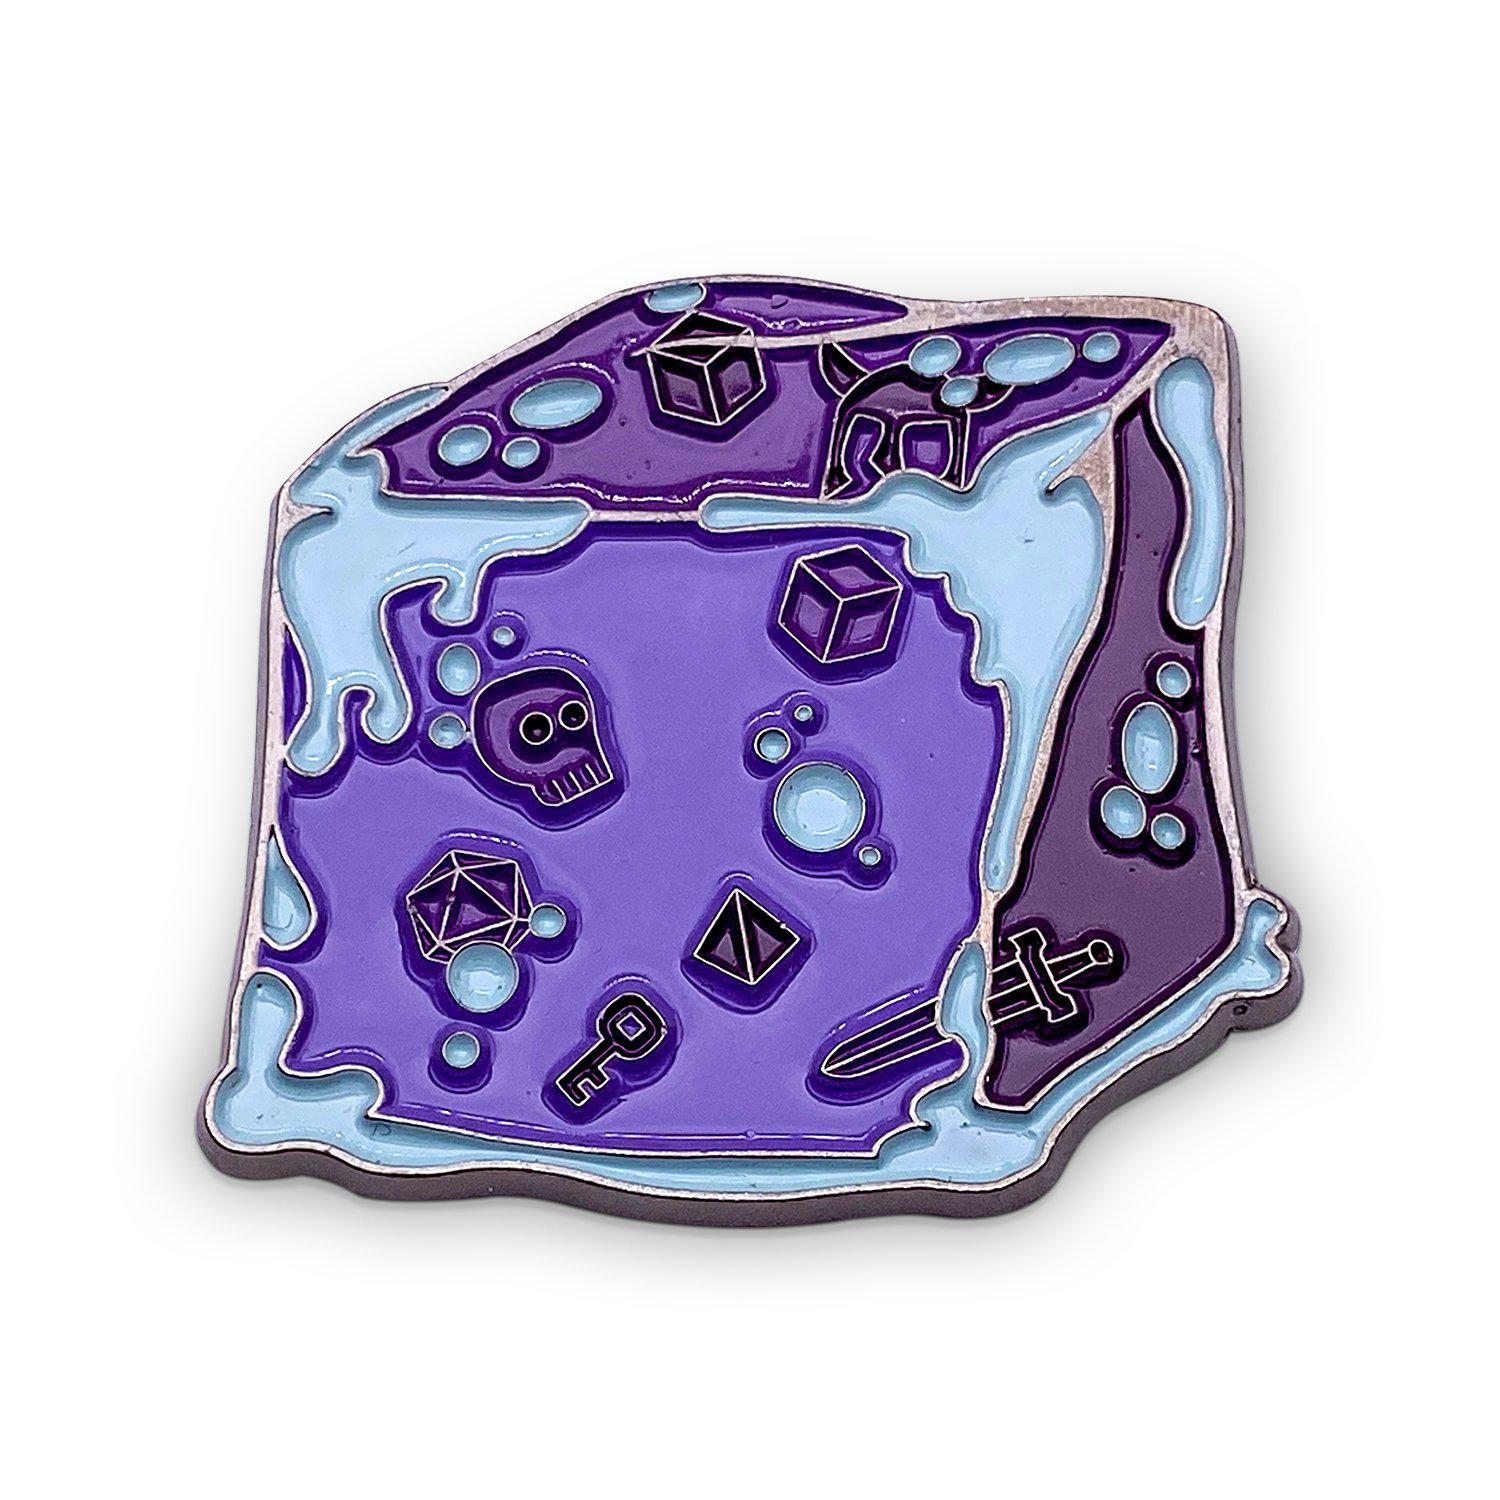 Gelatinous Cube - Hard Enamel Adventure Dice Pin Metal by Norse Foundry